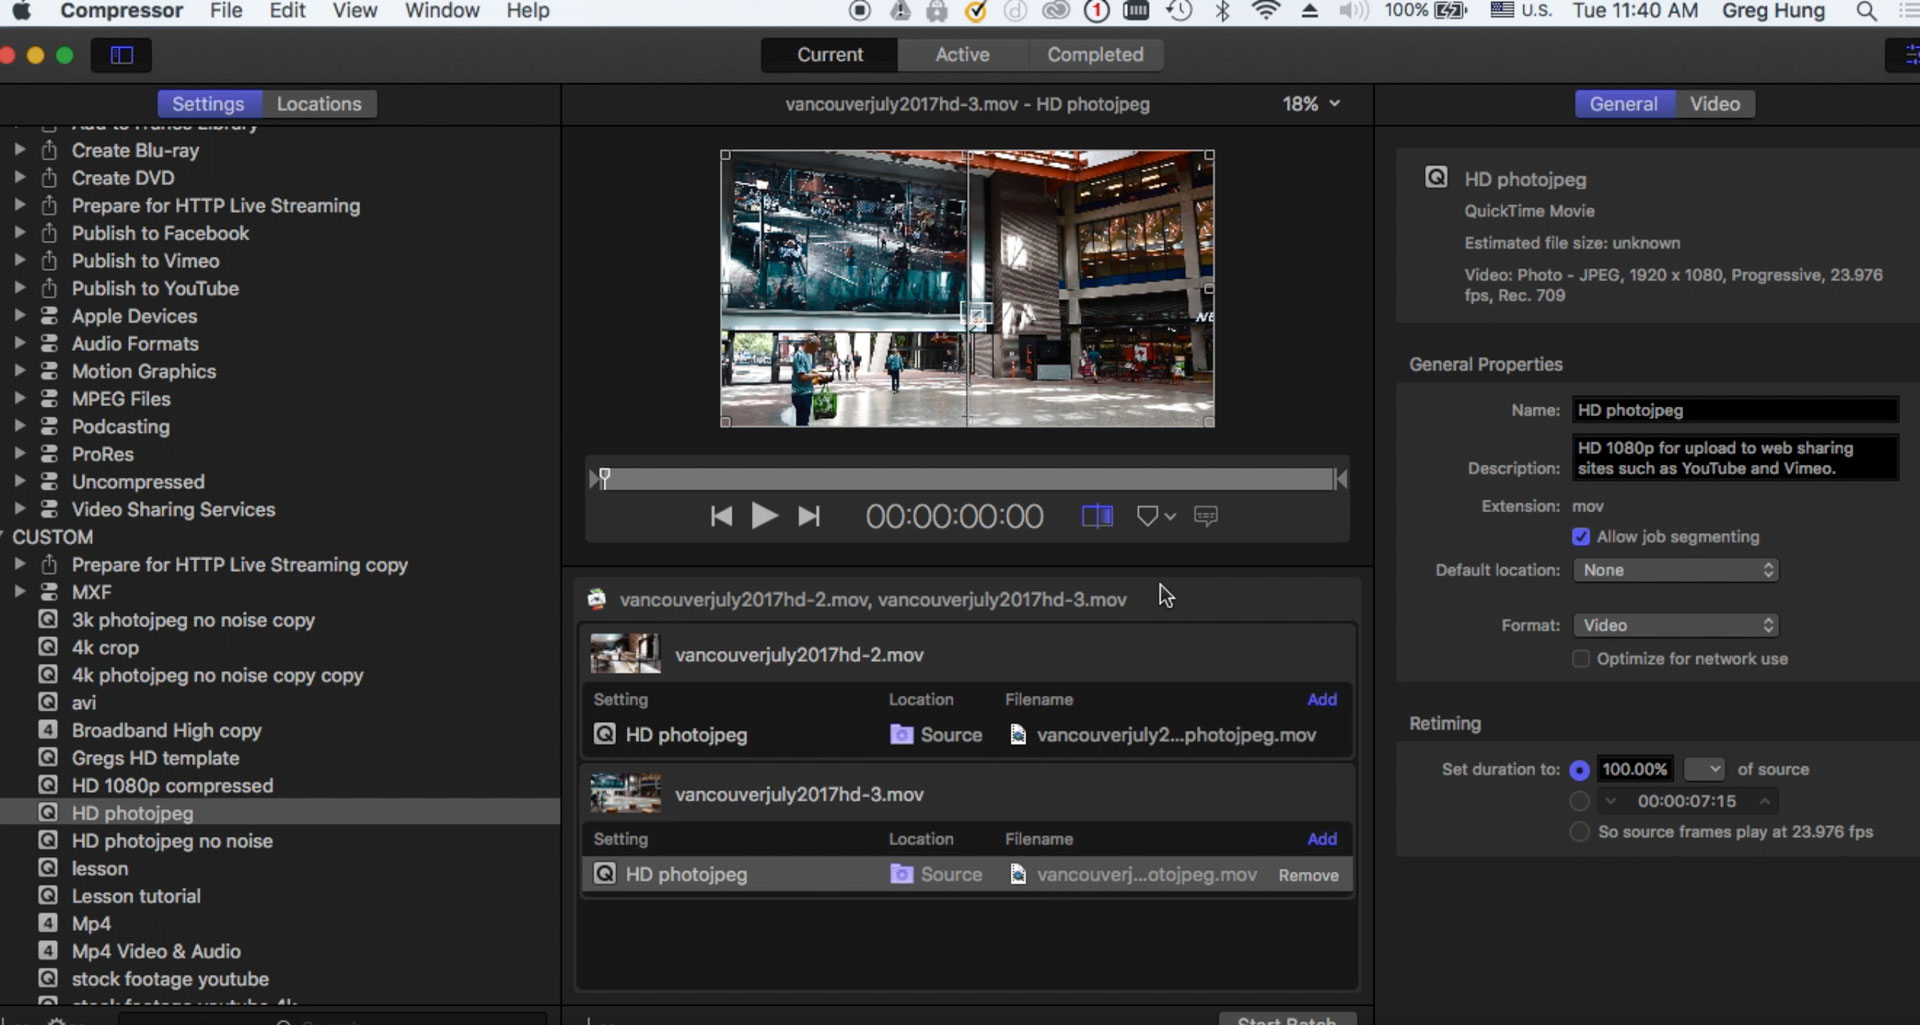 How to apply a Logo watermark to a multiple Video Files